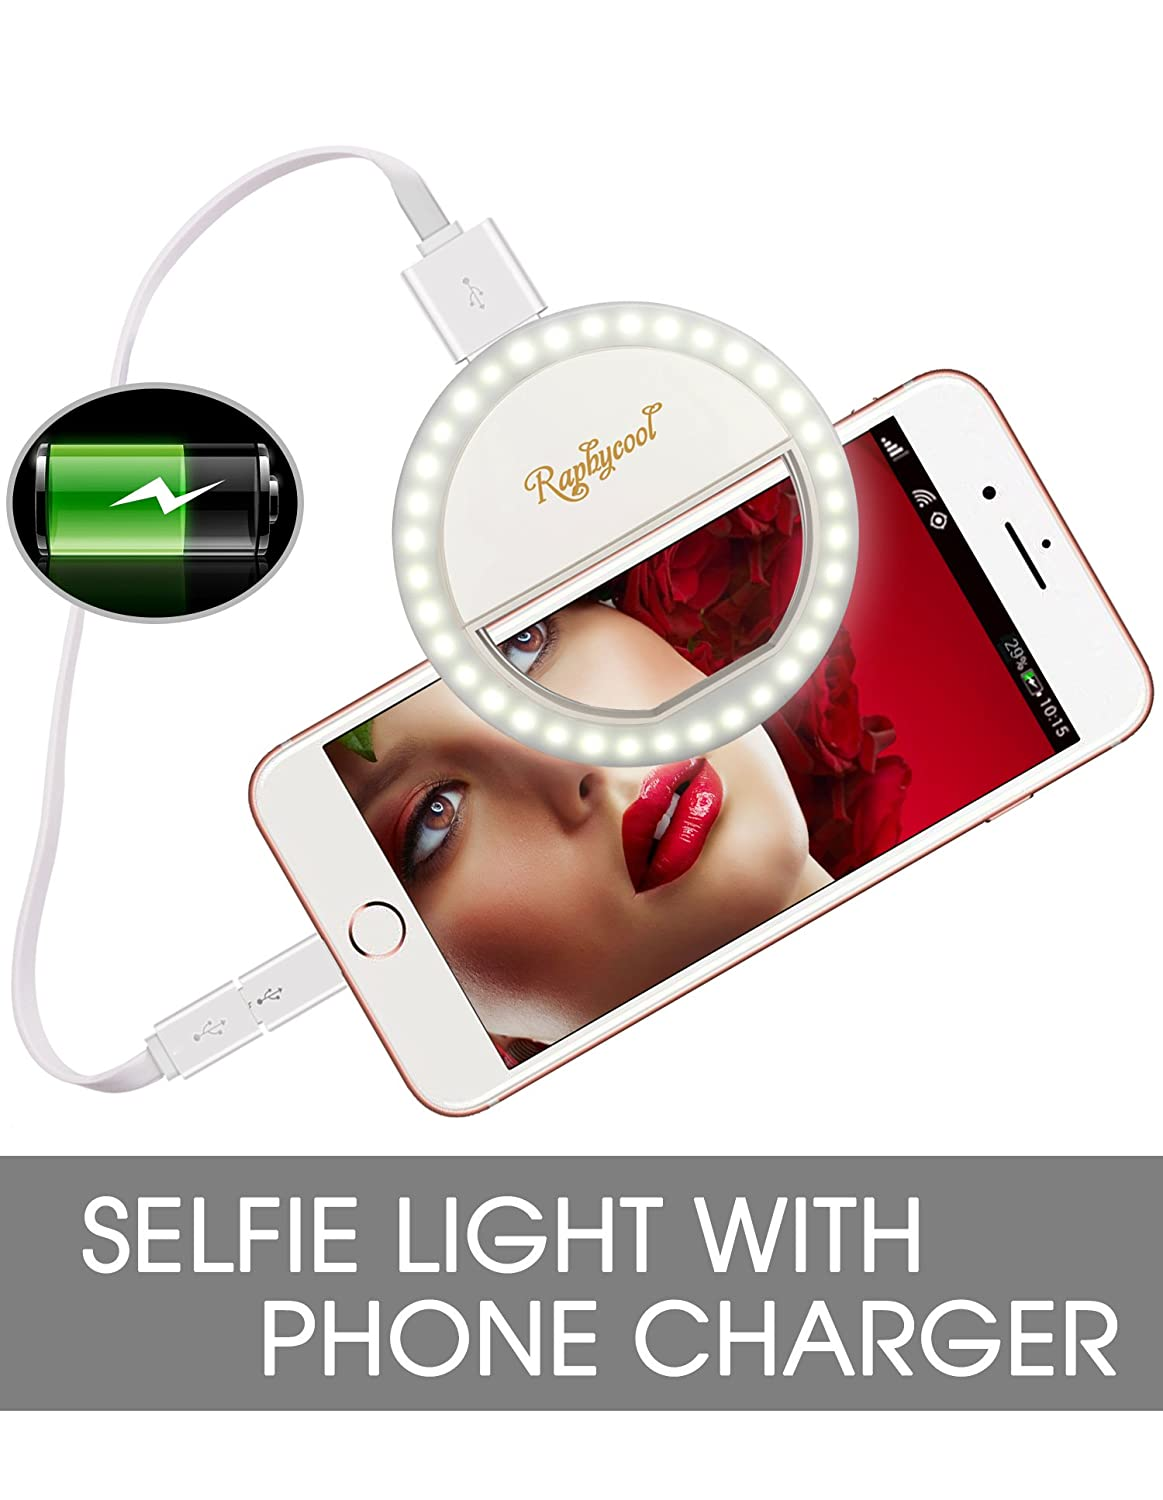 Raphycool Selfie Light Rechargeable with LED Light and 1500 MaH Power Bank